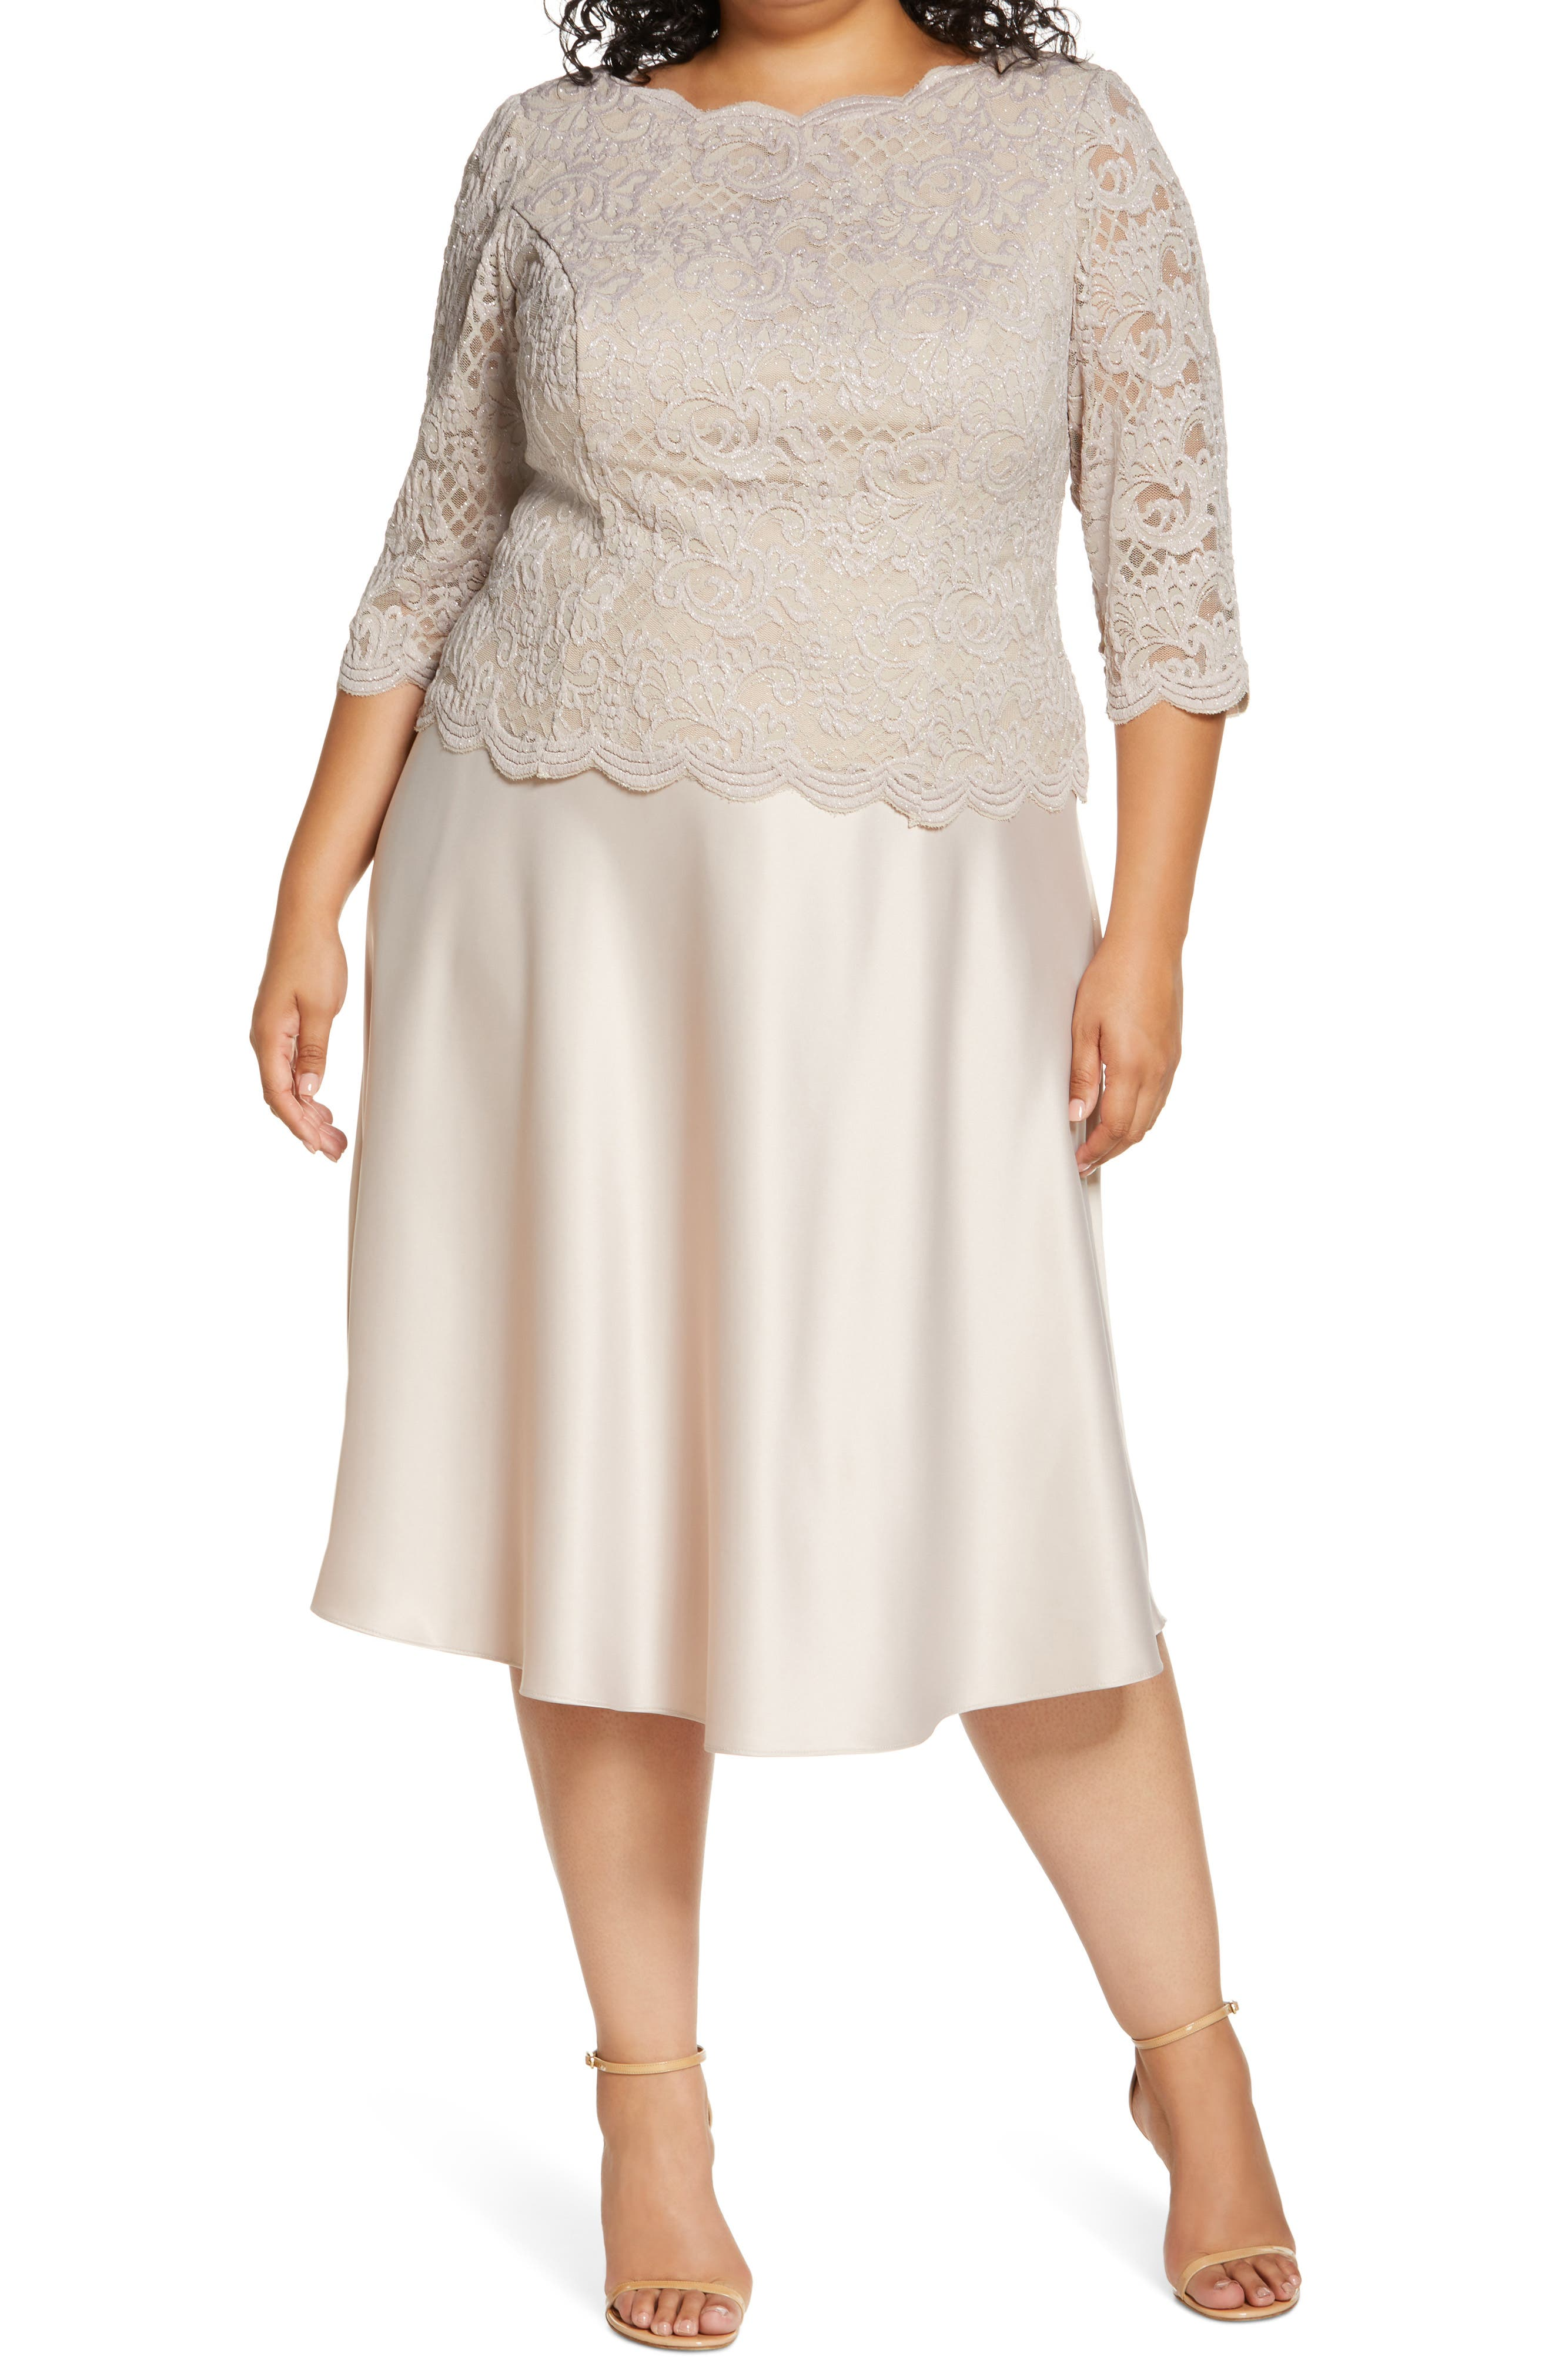 1920s Plus Size Fashion in the Jazz Age Plus Size Womens Alex Evenings Brocade Bodice Cocktail Midi Dress Size 16W - Brown $199.00 AT vintagedancer.com